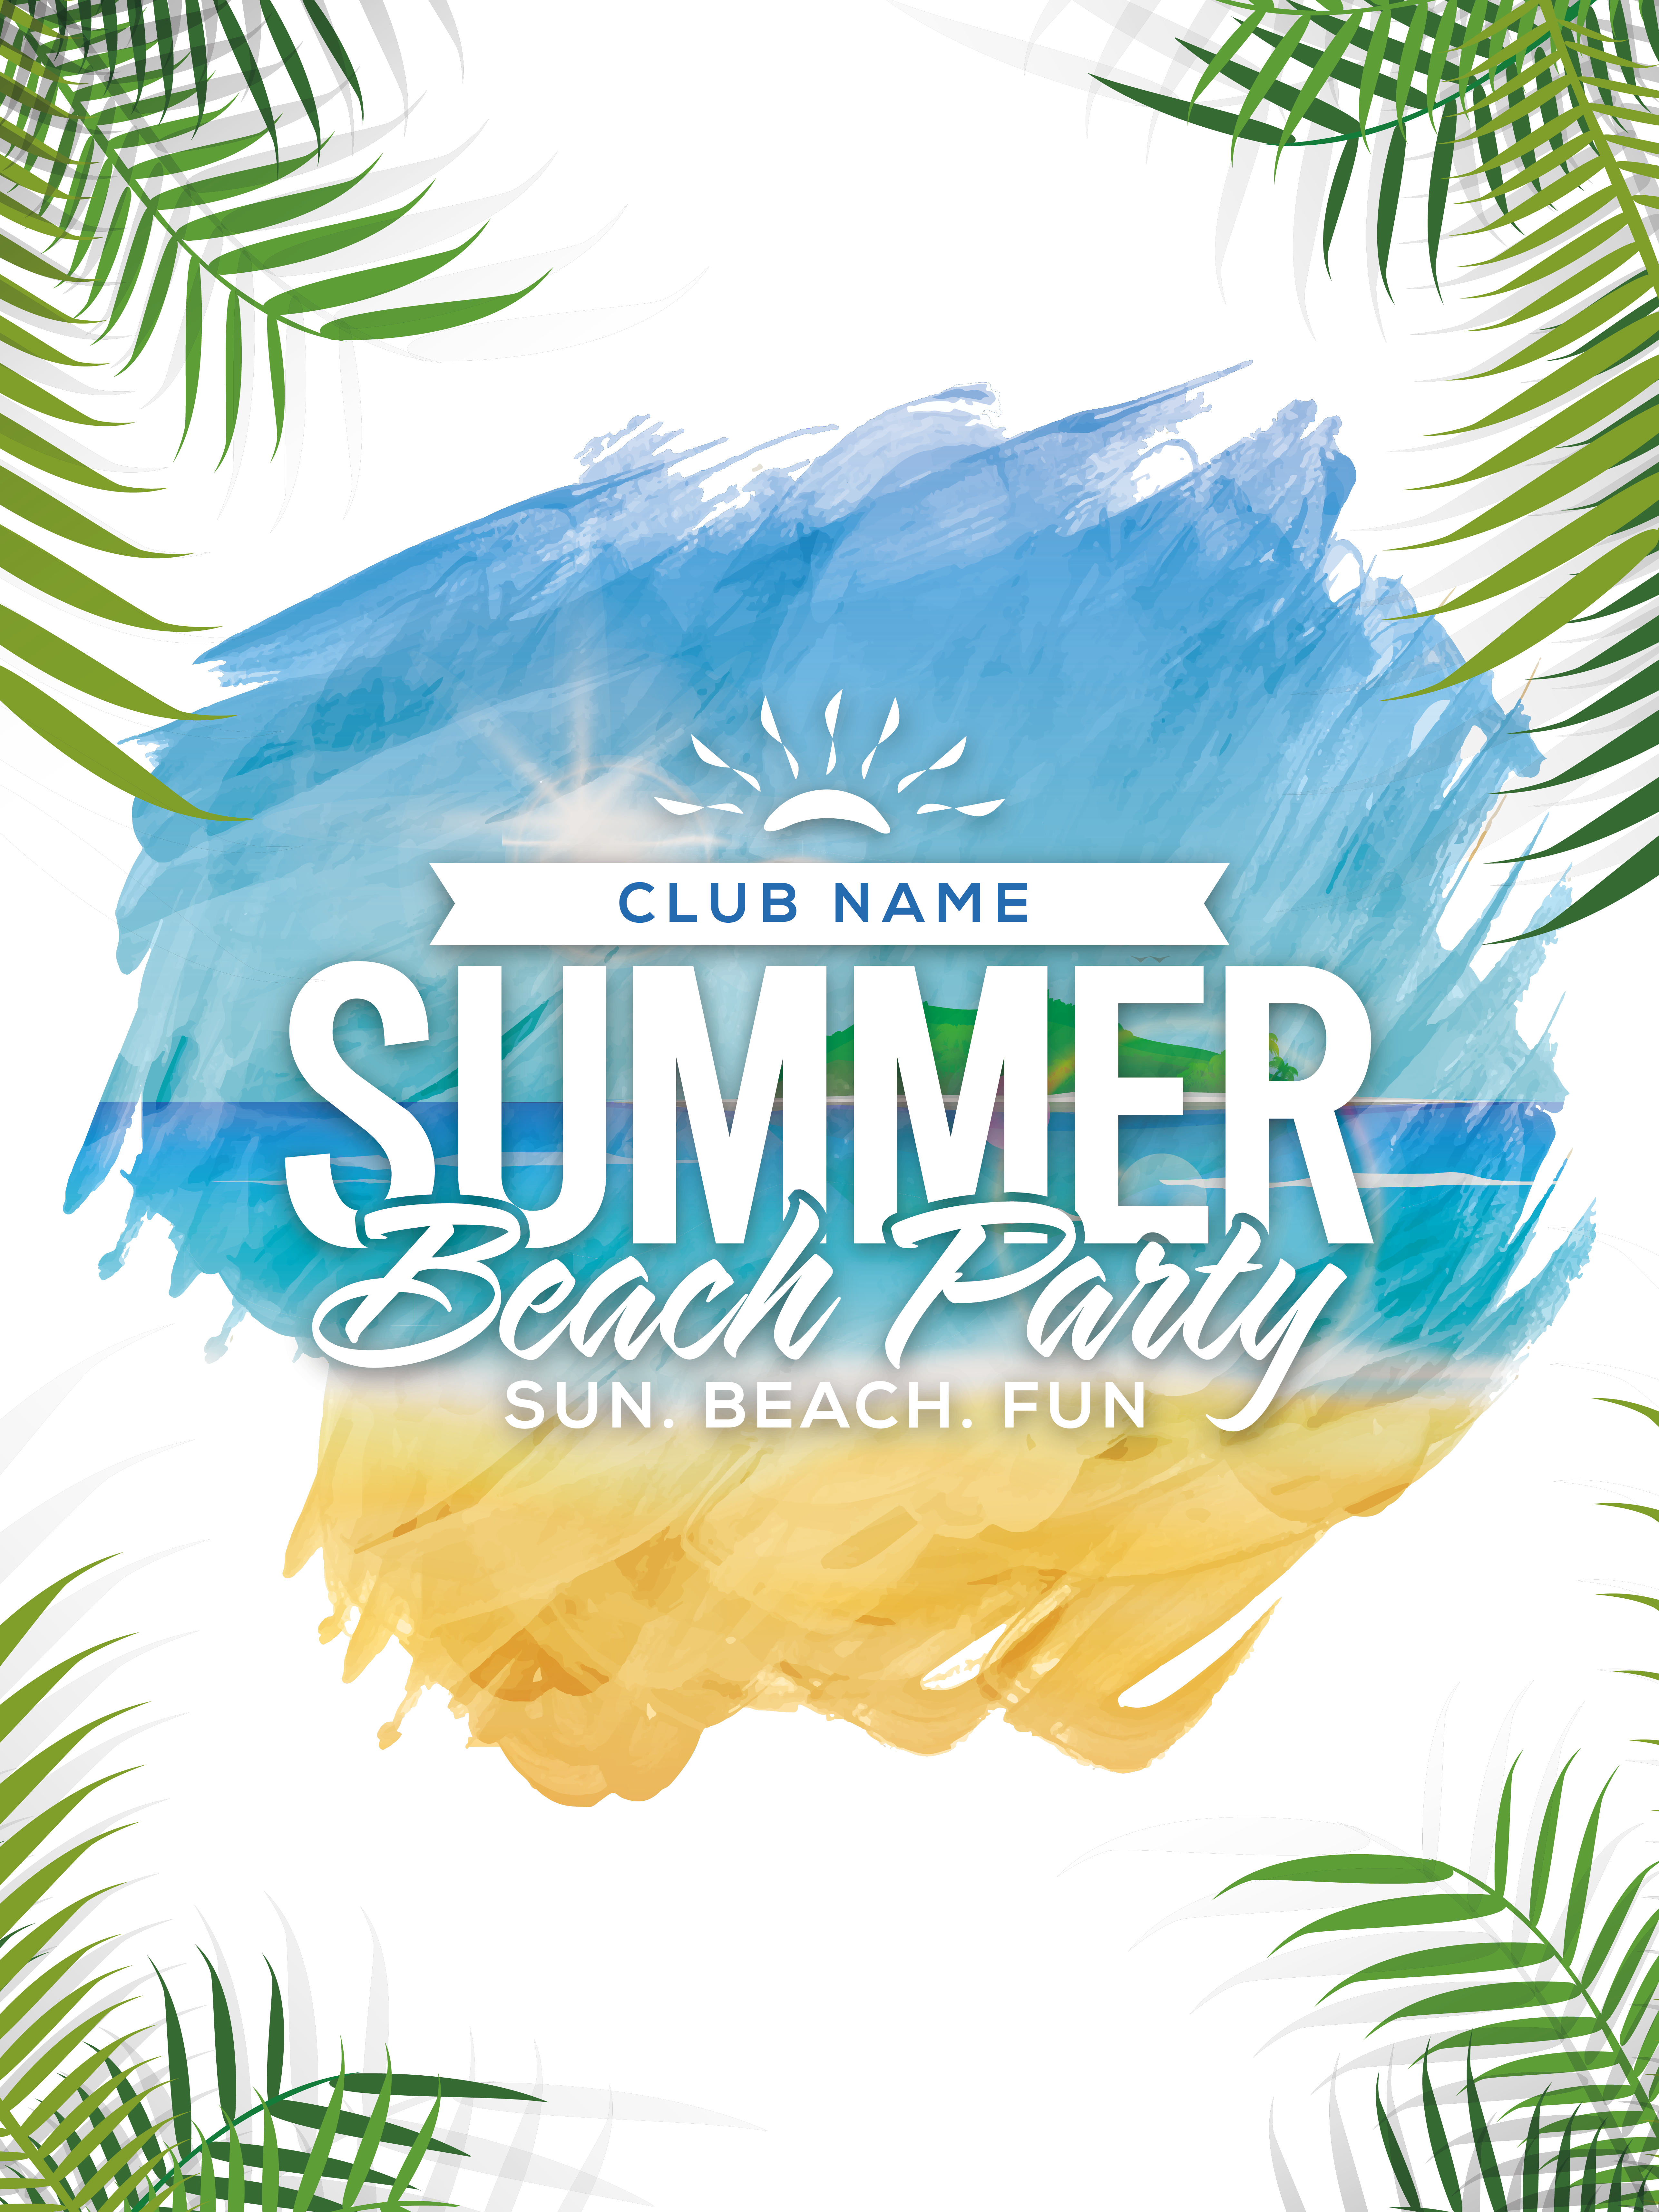 Summer Beach Party Poster PNG Image.